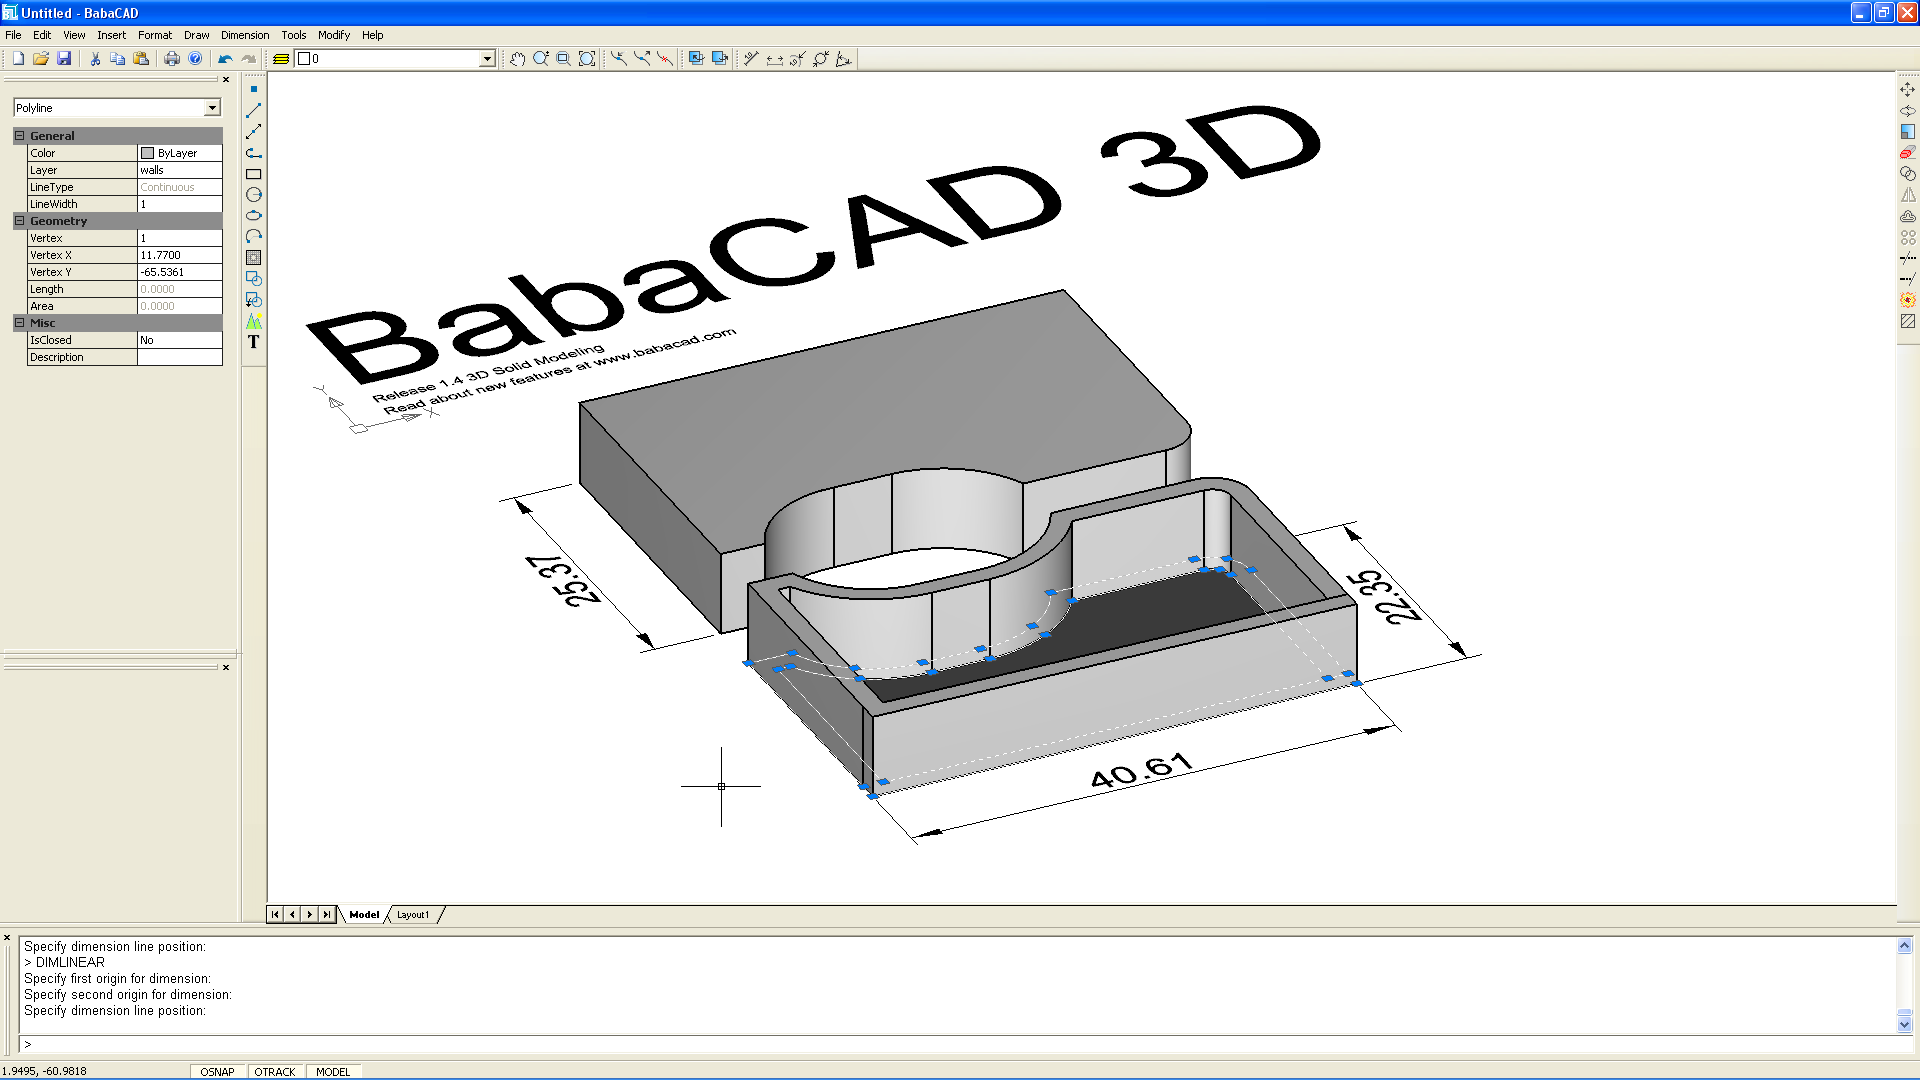 BabaCAD 3D Mechanical Part 1